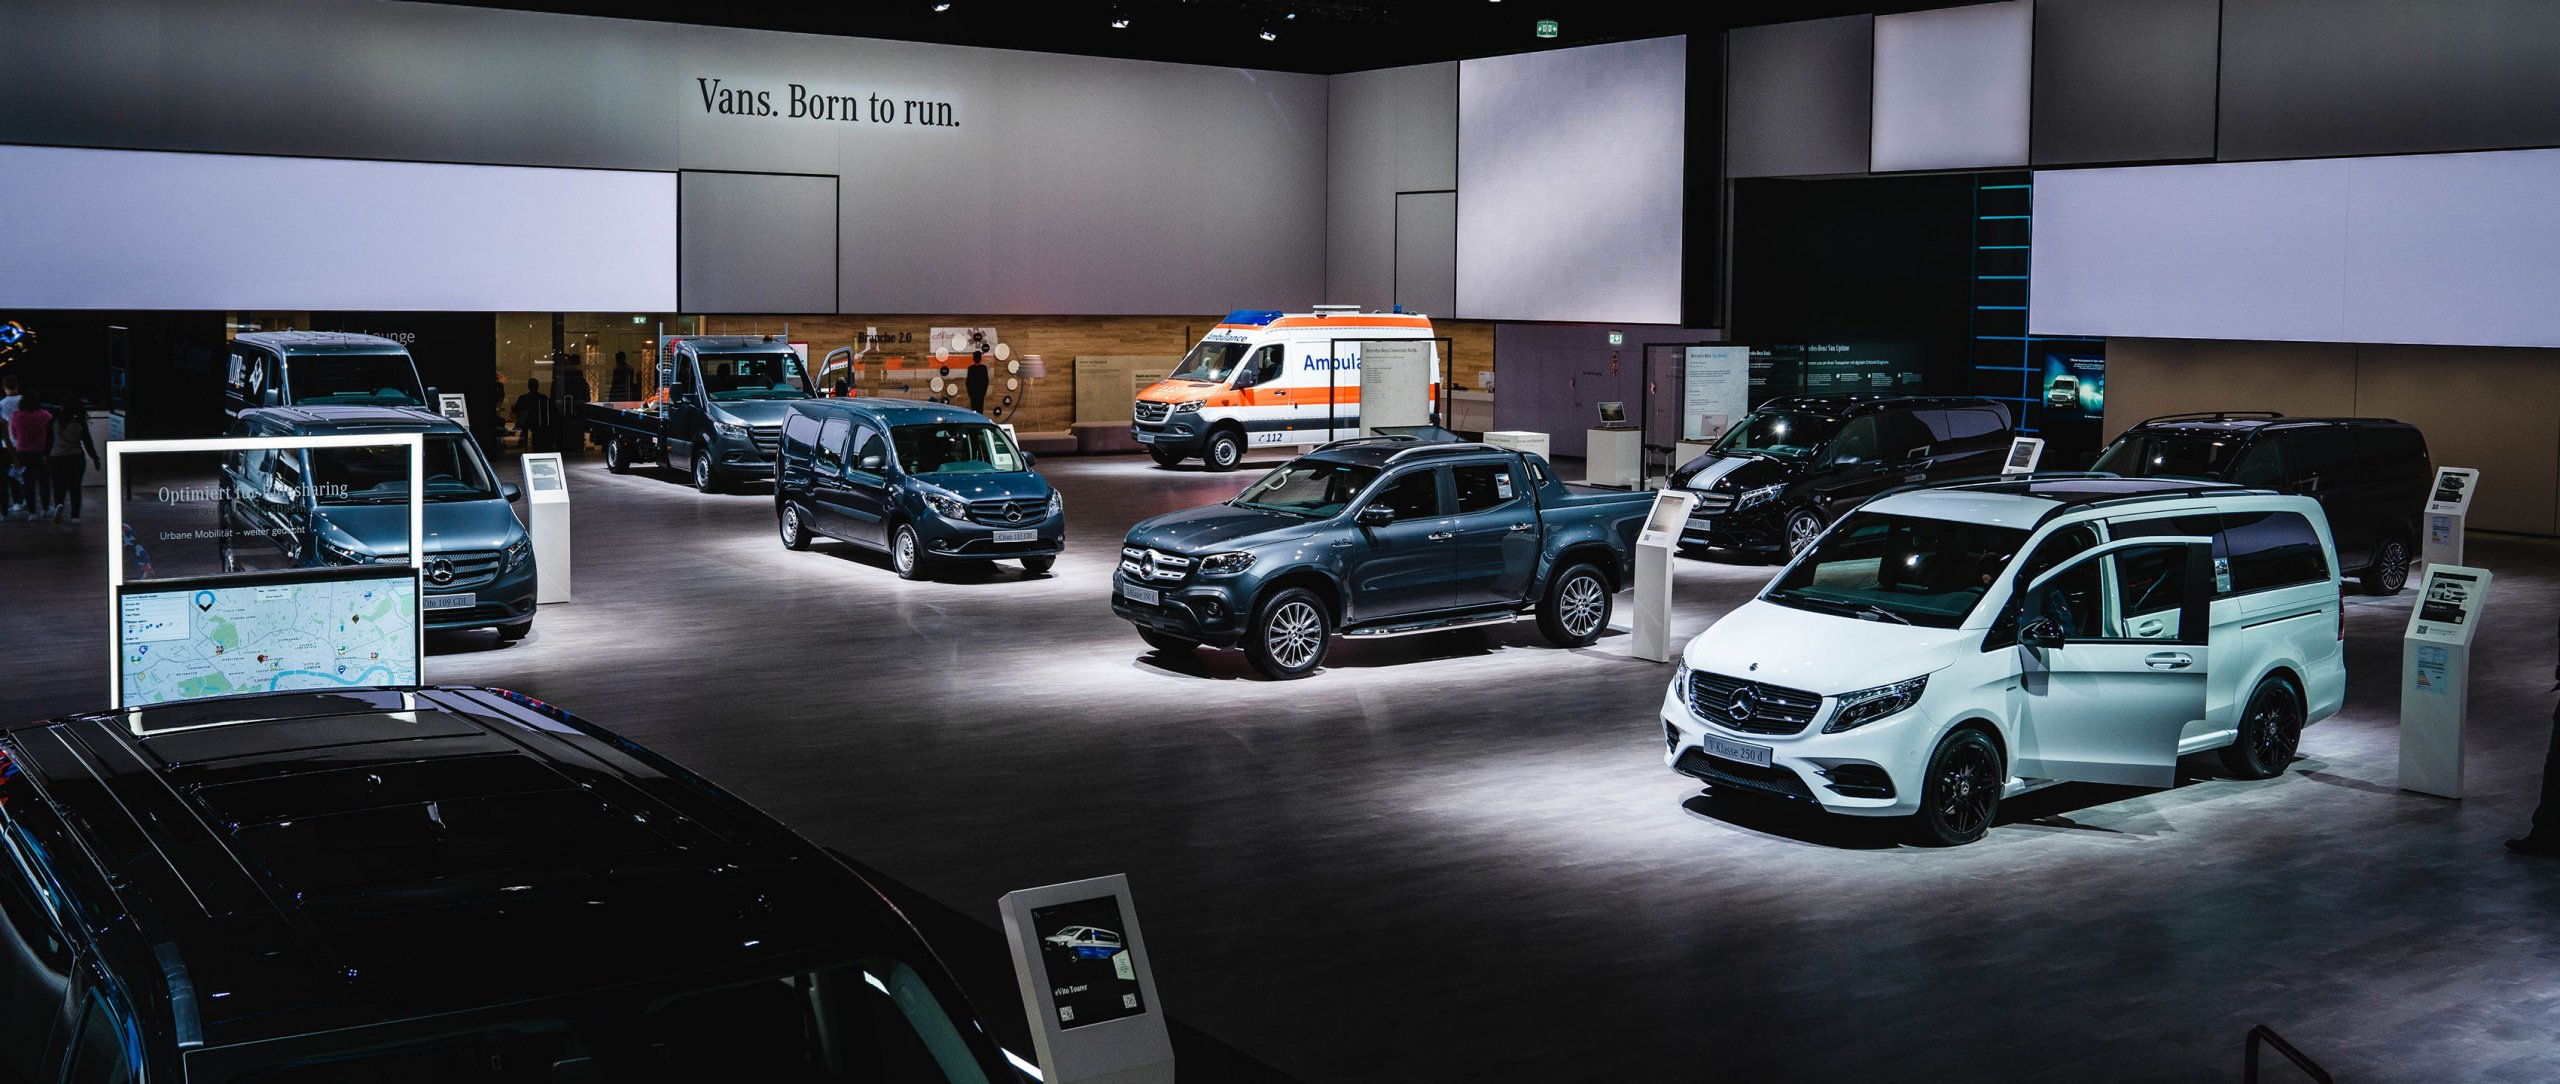 Mercedes-Benz Vans at the IAA Commercial Vehicle 2018